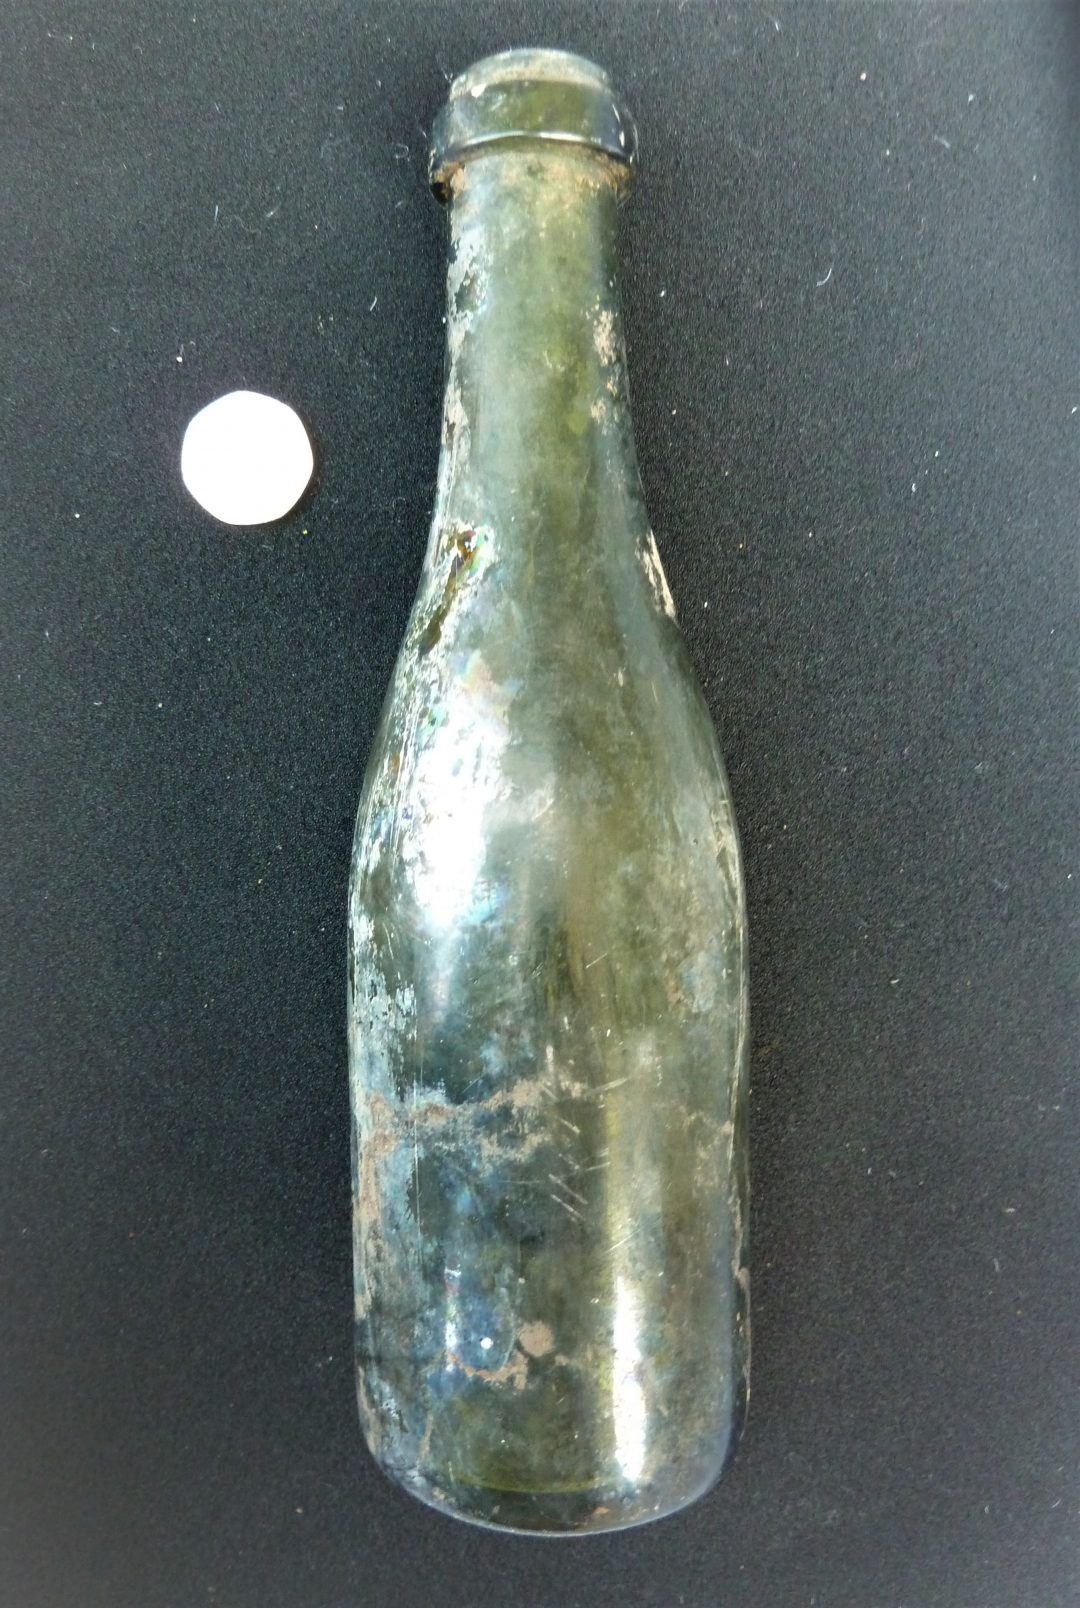 Small Champagne bottle